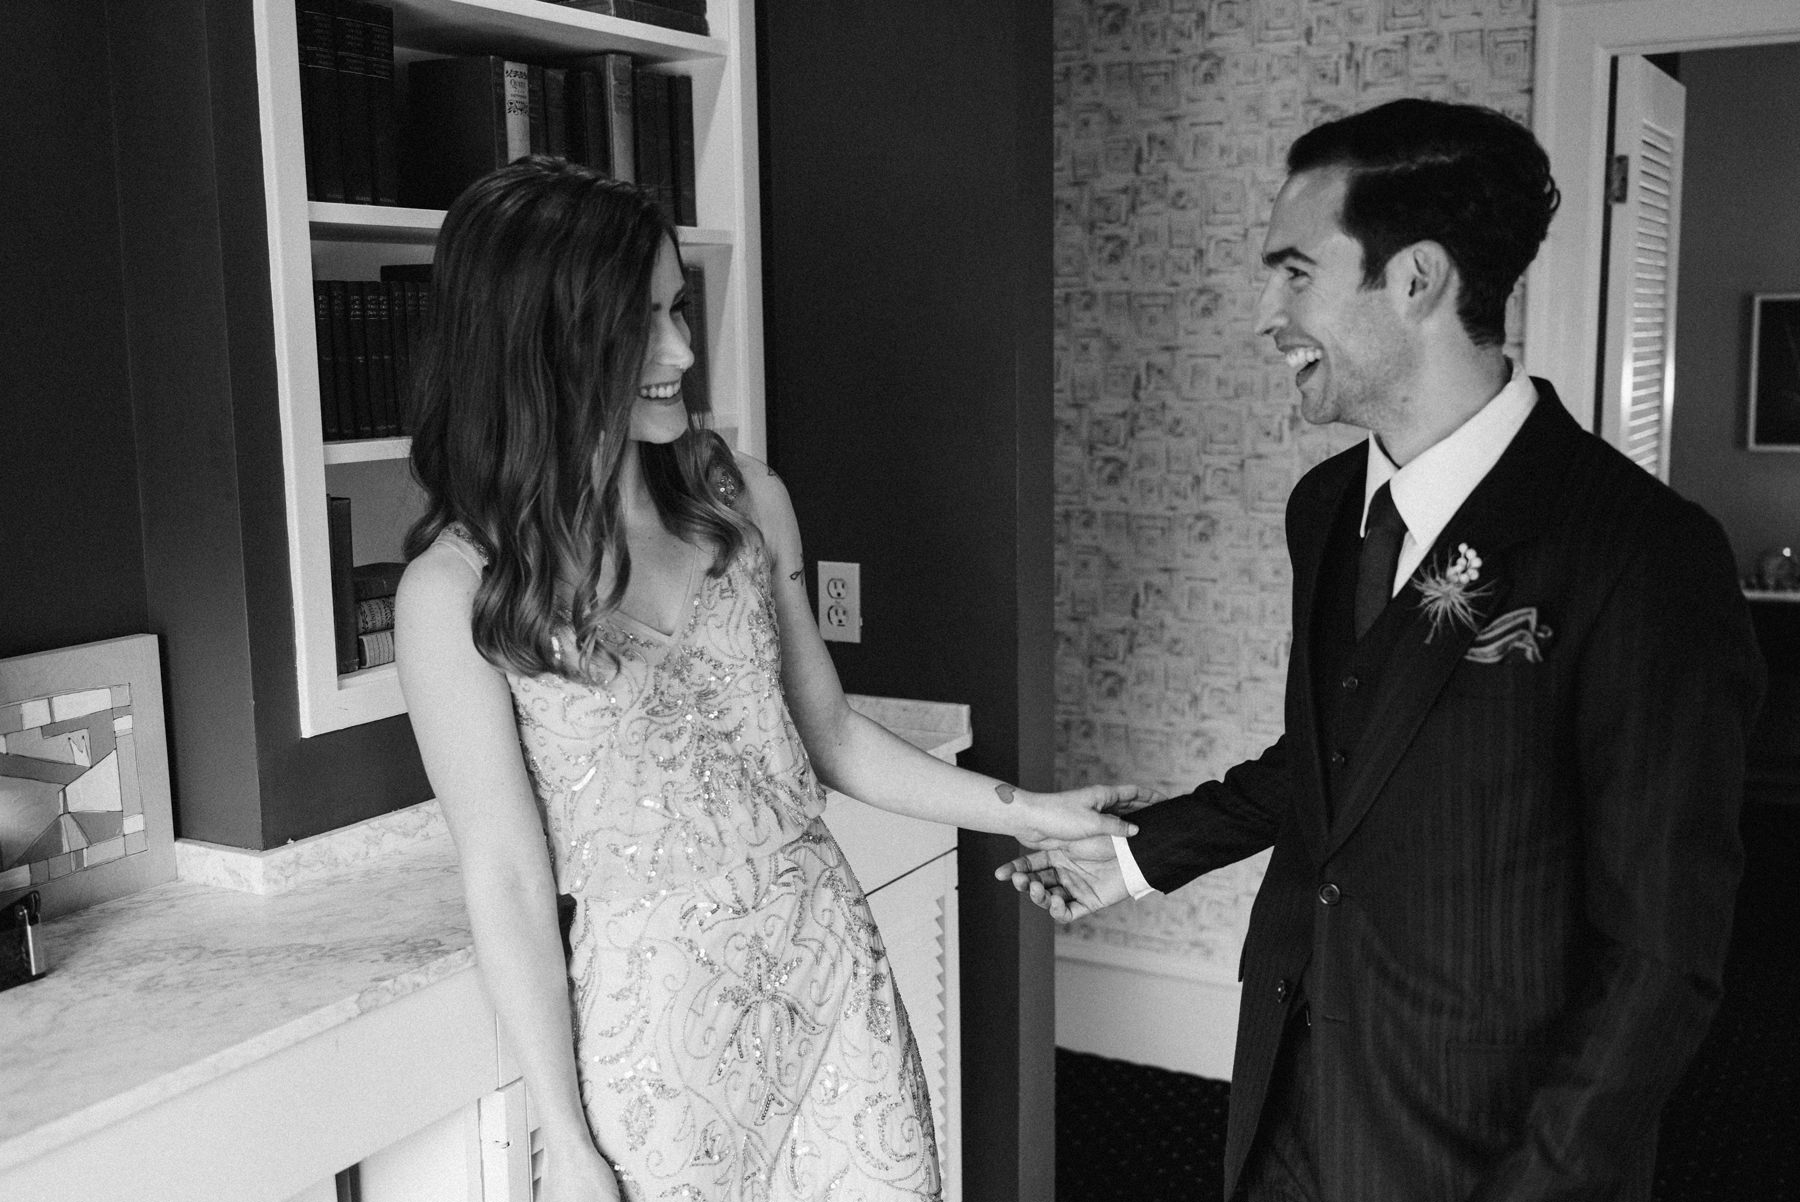 021-couple-exchanging-wedding-gifts-at-hotel-sorrento-by-ryan-flynn.jpg